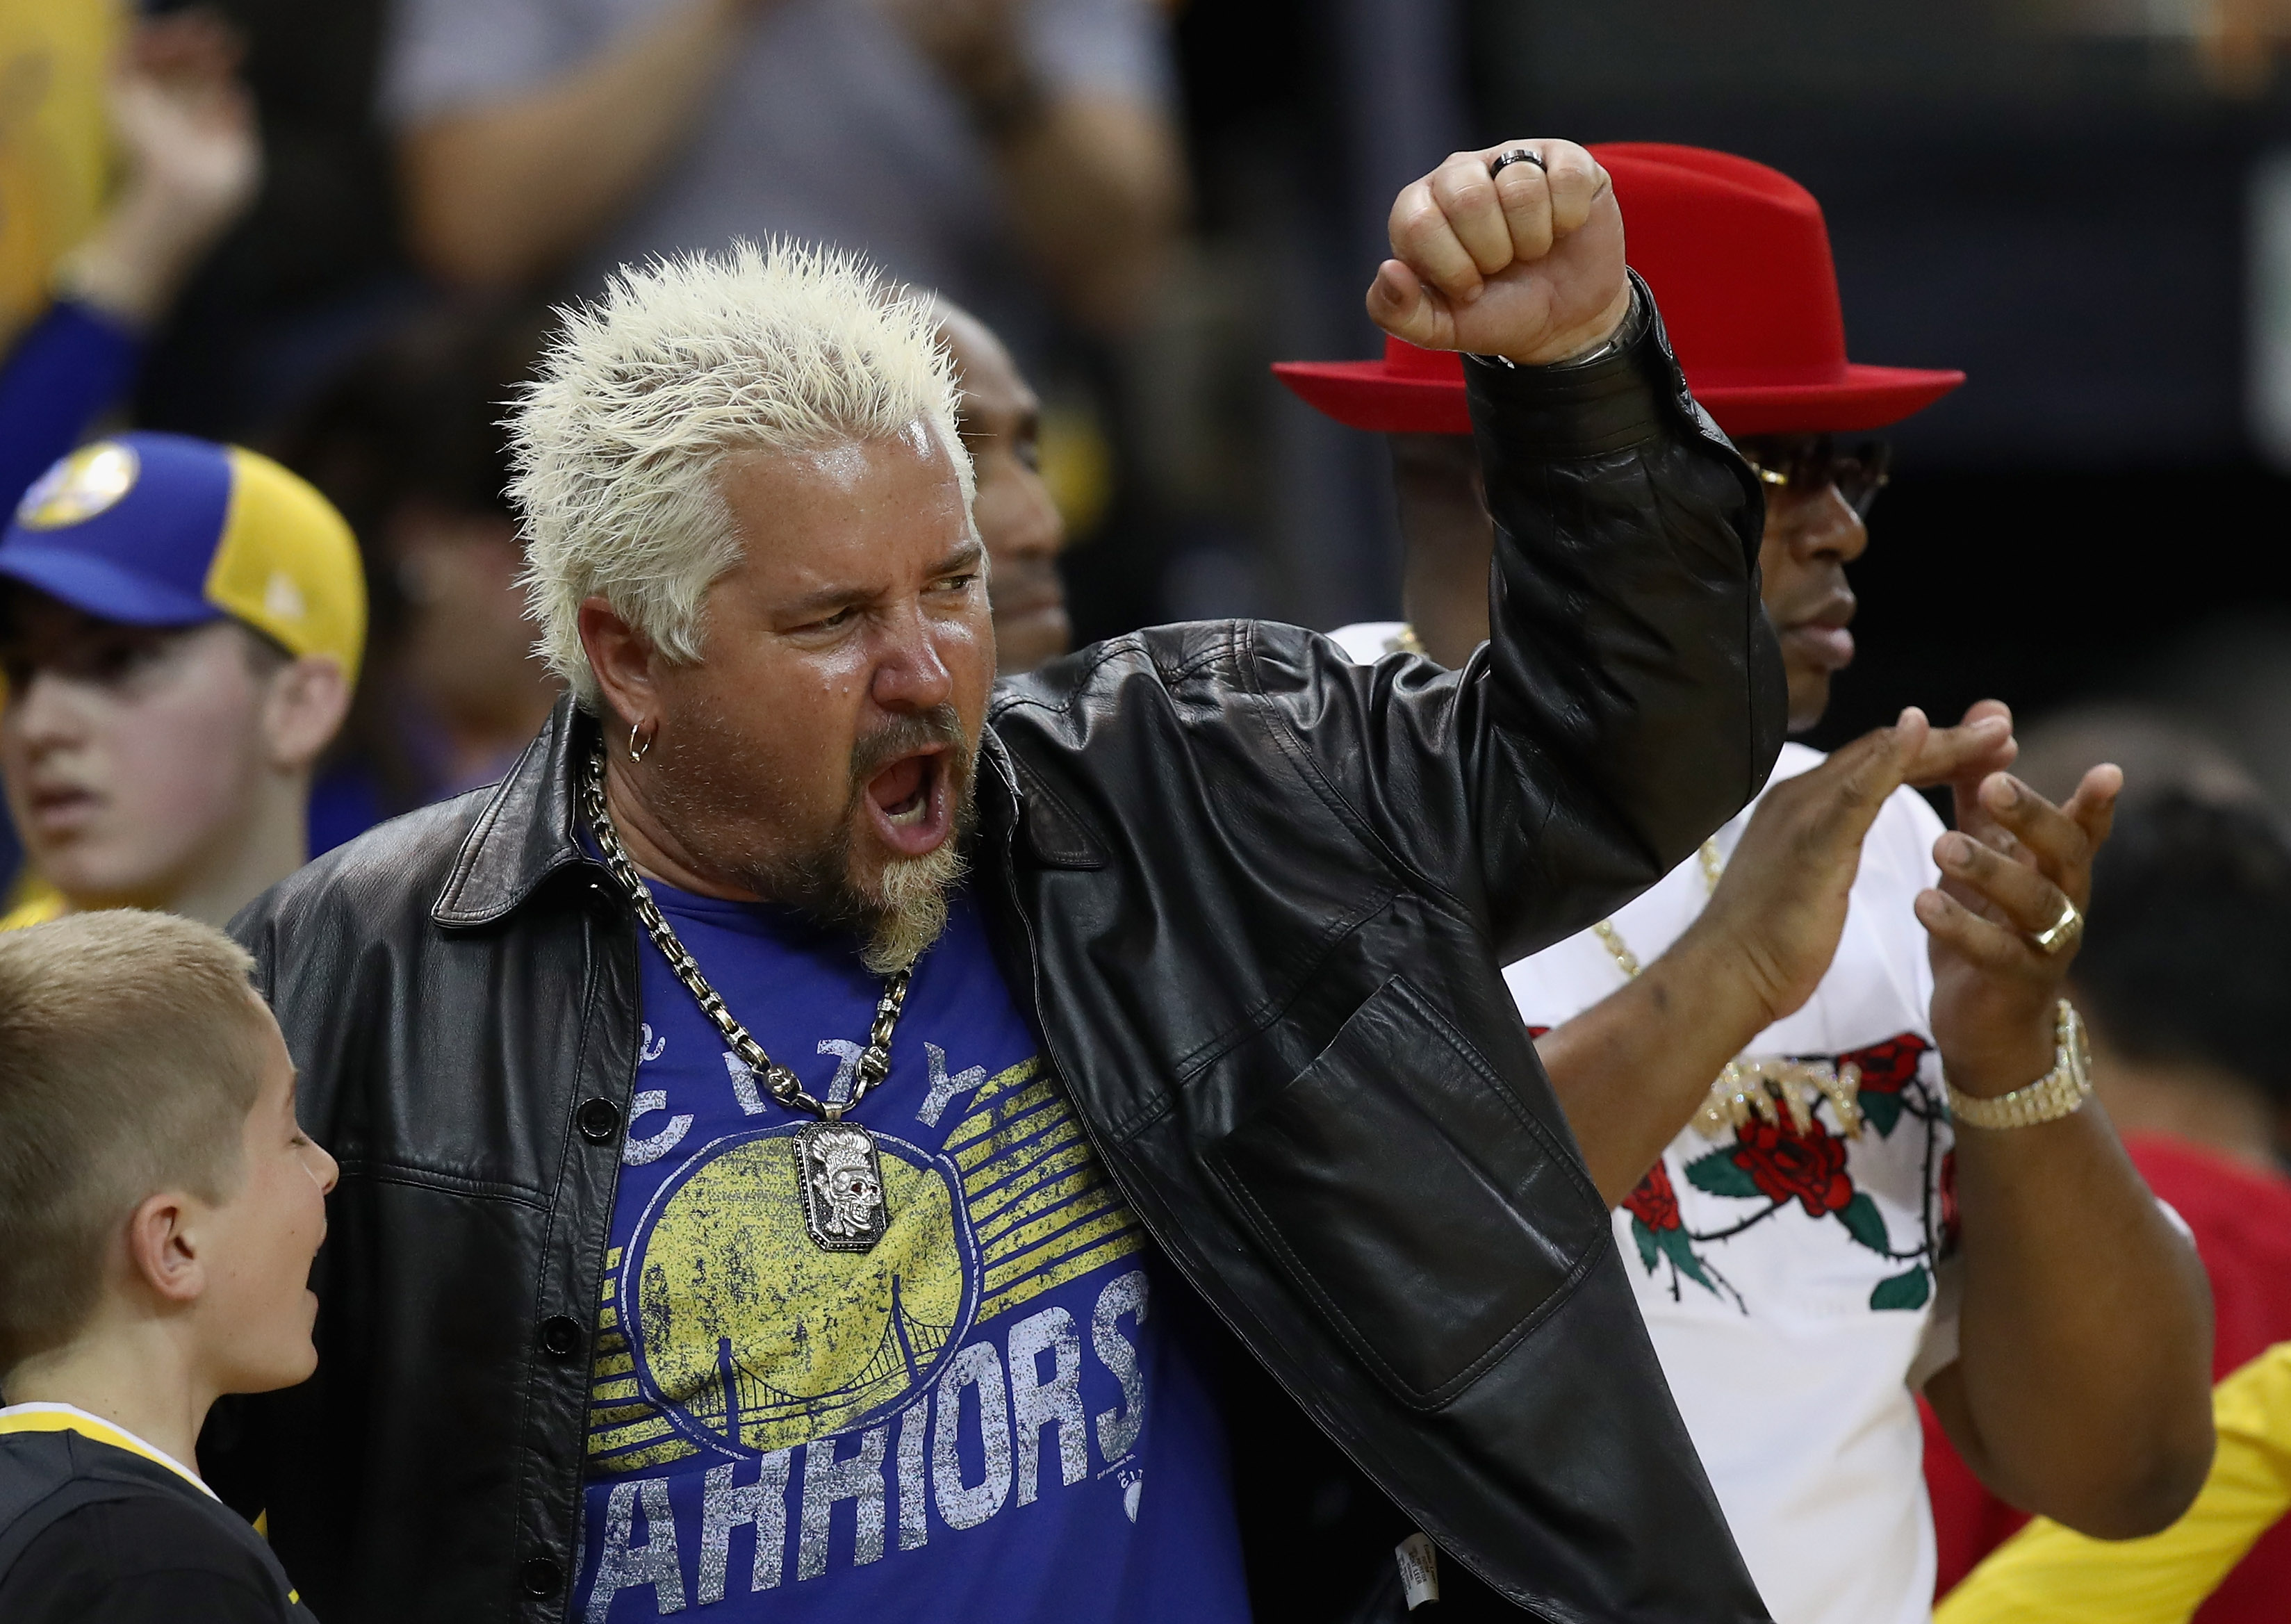 Guy Fieri in a Golden State Warriors t-shirt, gold chain, and black leather jacket, pumps his fist while sitting courtside at an NBA basketball game.